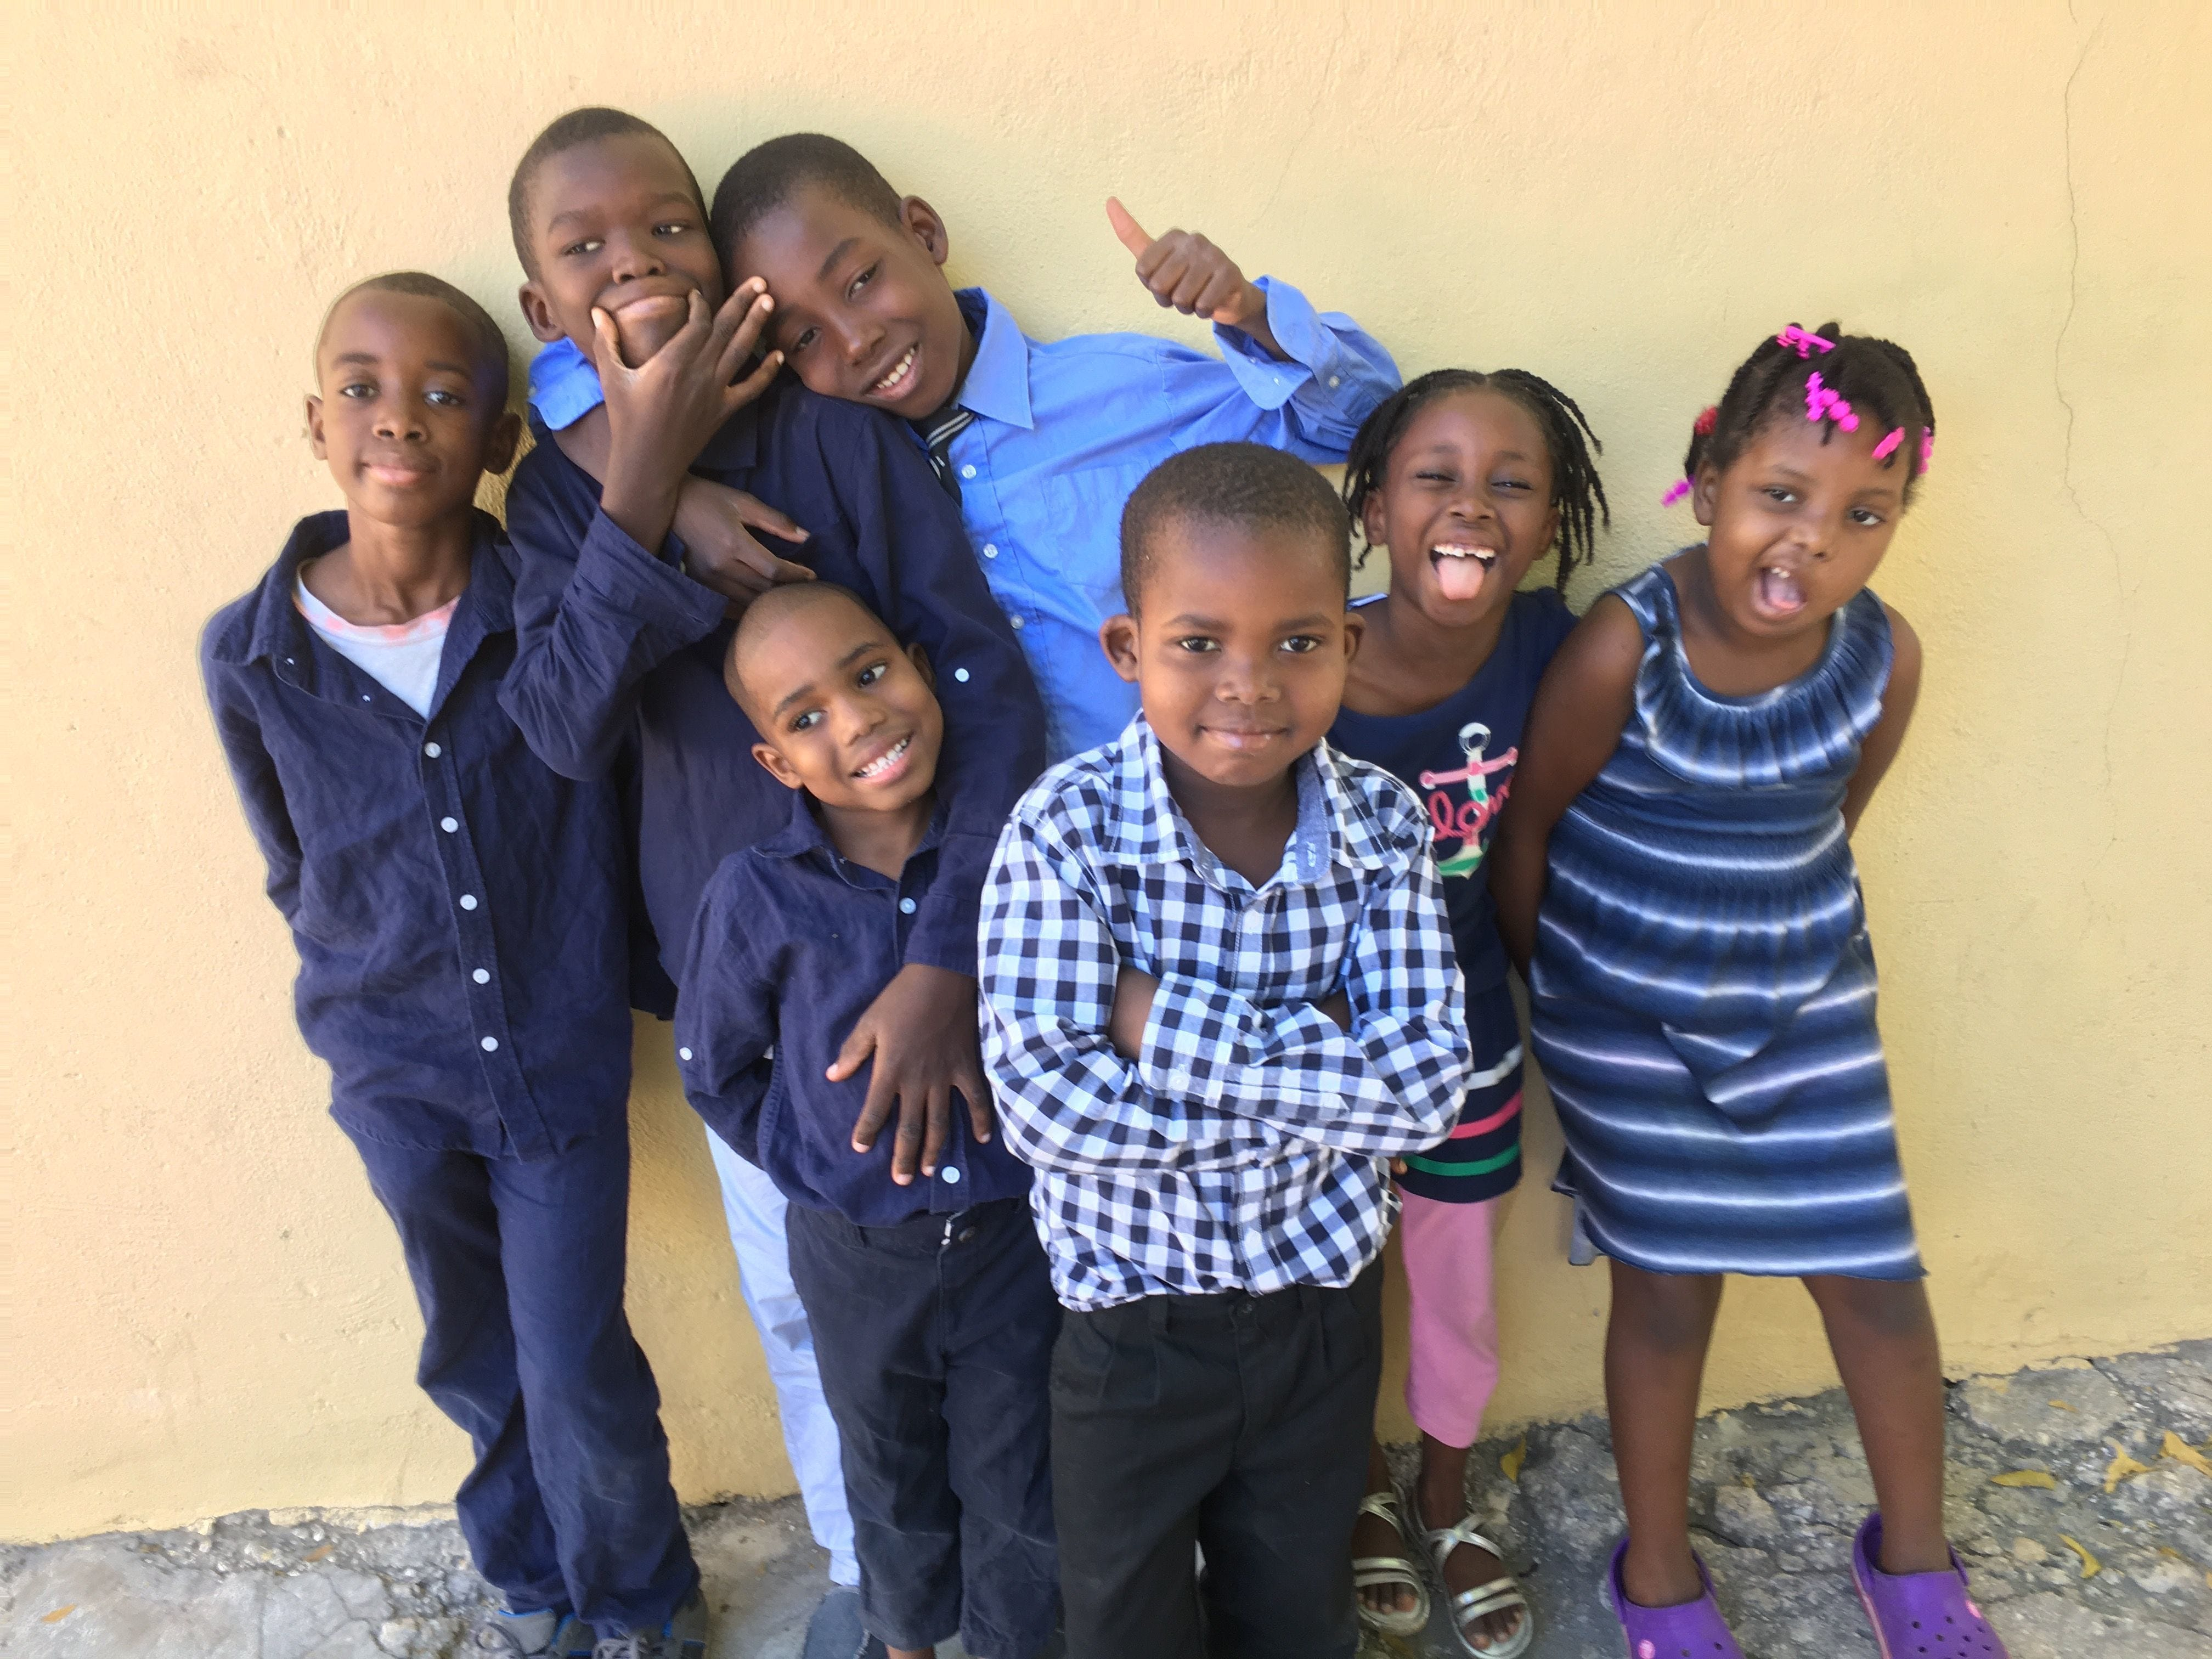 Chika, 5, right, and her friends from the Have Faith Haiti Orphanage in December 2015.